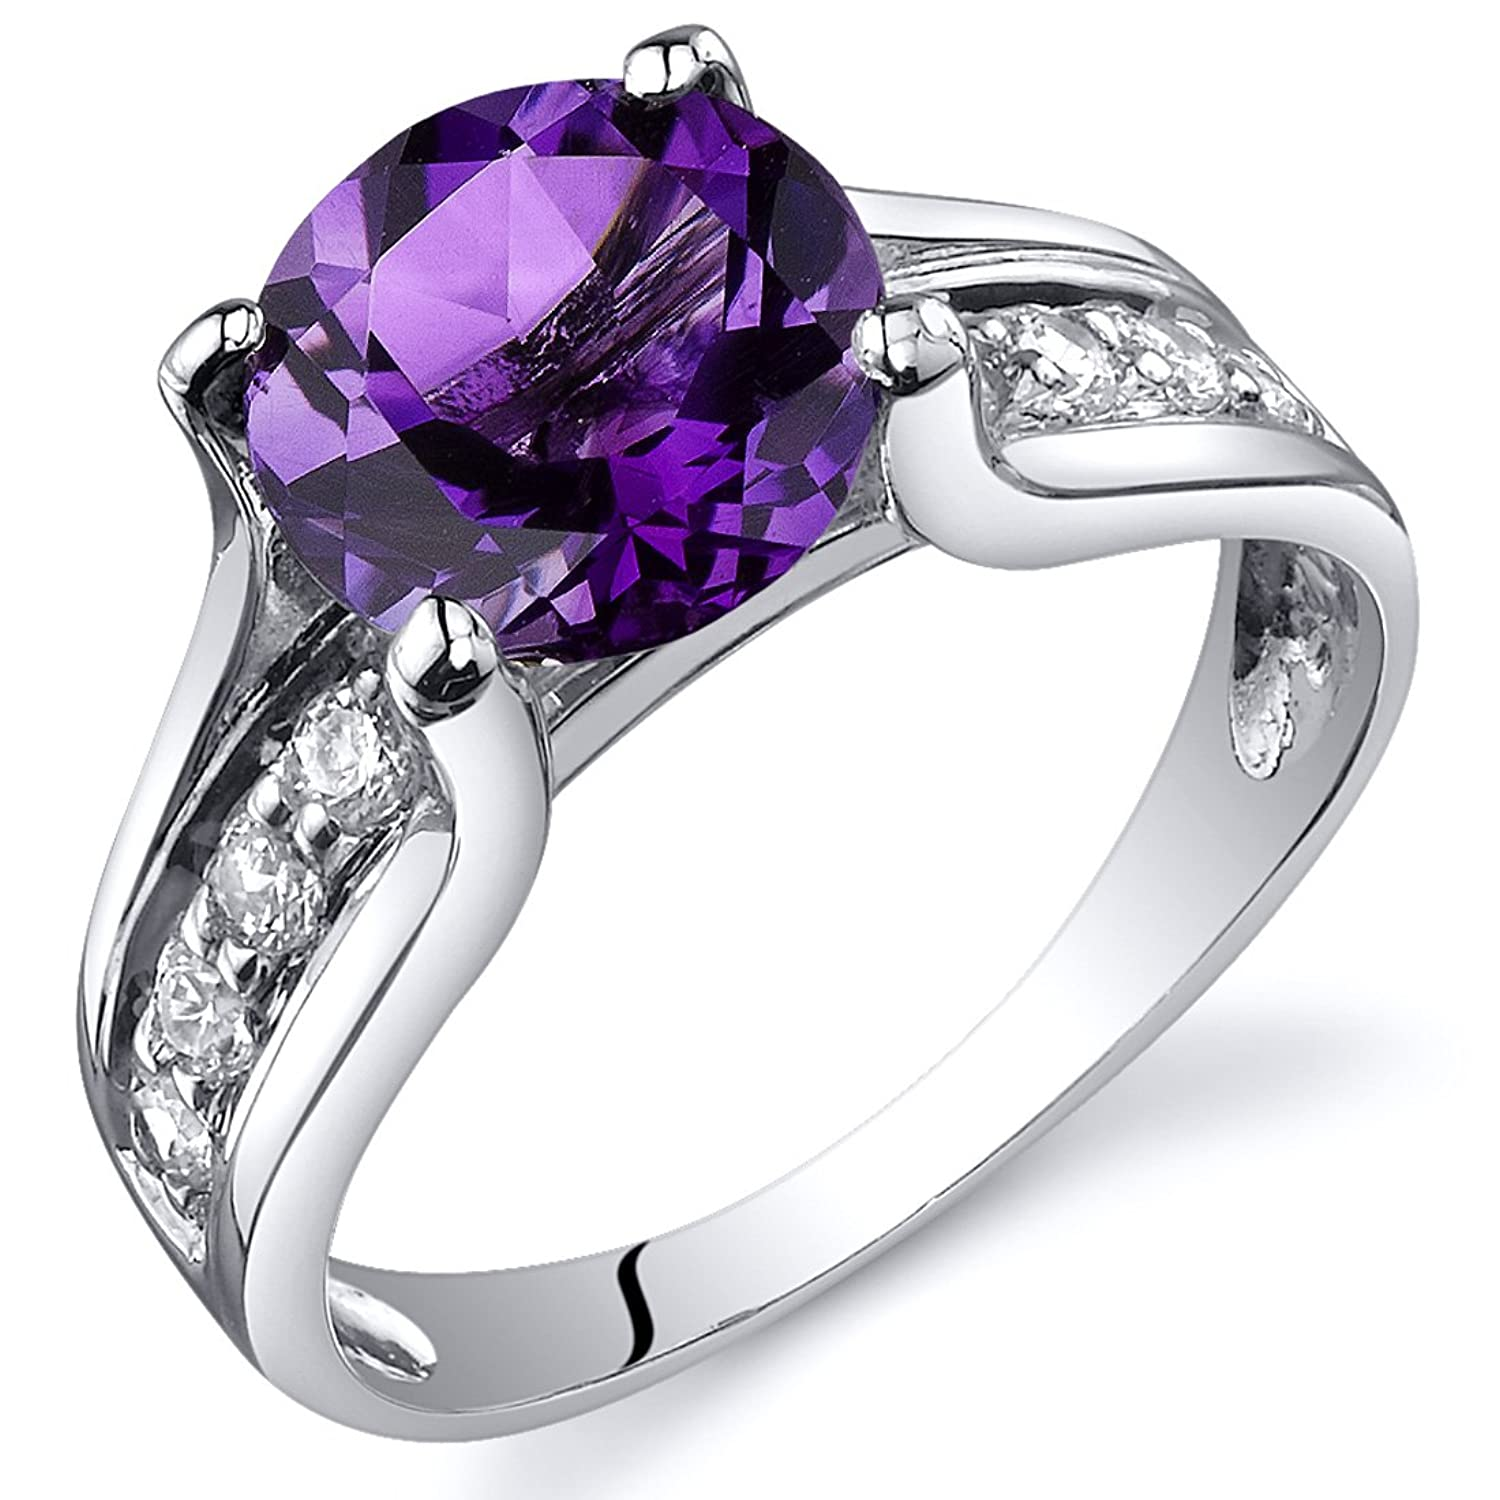 how and purple clean to amethyst cleaning ring tip care tips an jewelry rings